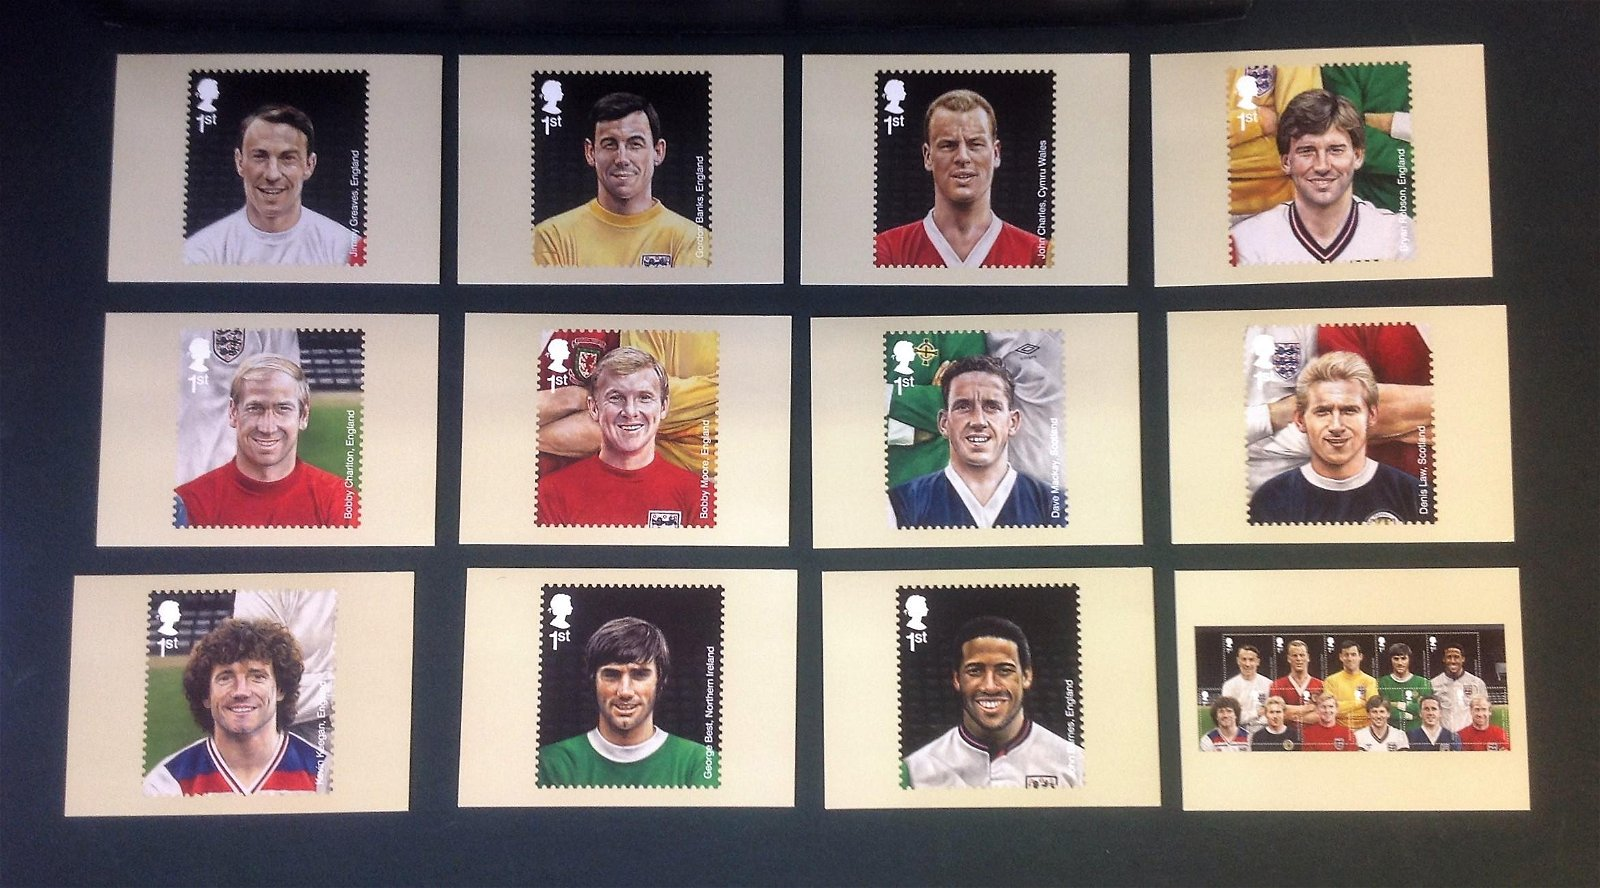 Football Legends PHQ Card collection 12 superb cards